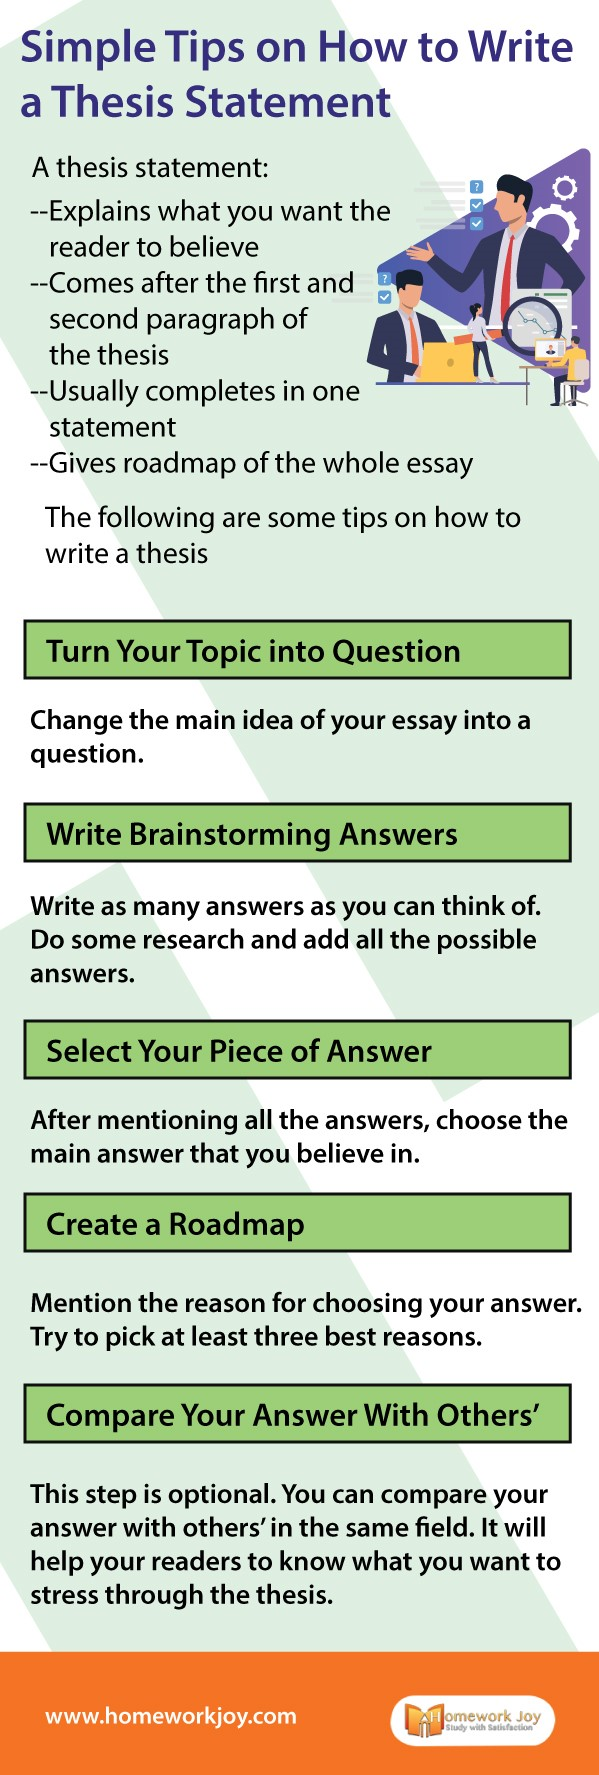 Simple Tips on How to Write a Thesis Statement